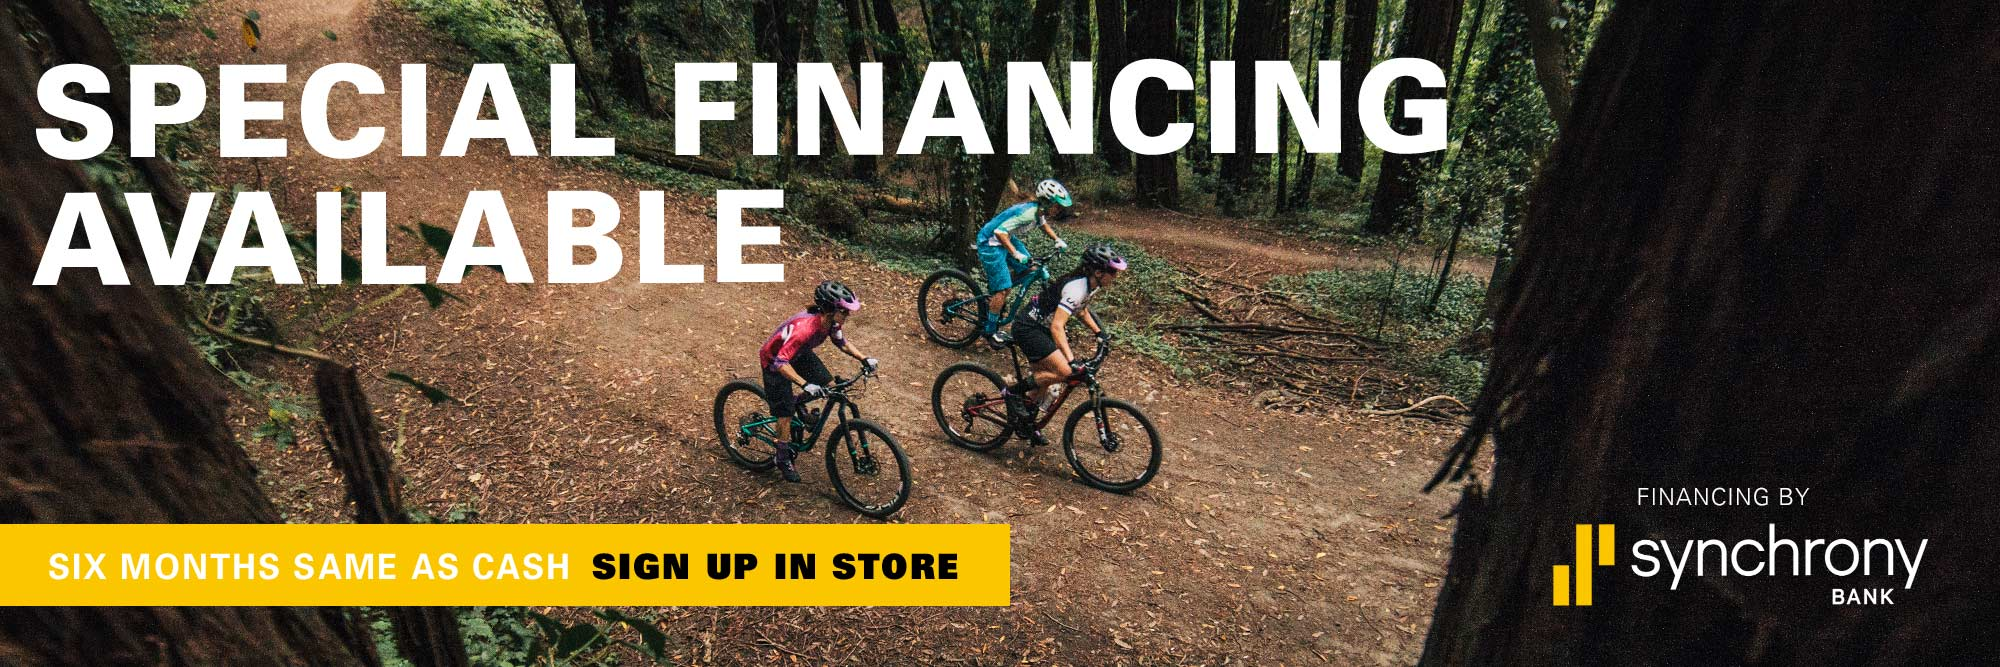 Pearland Bicycles - Financing